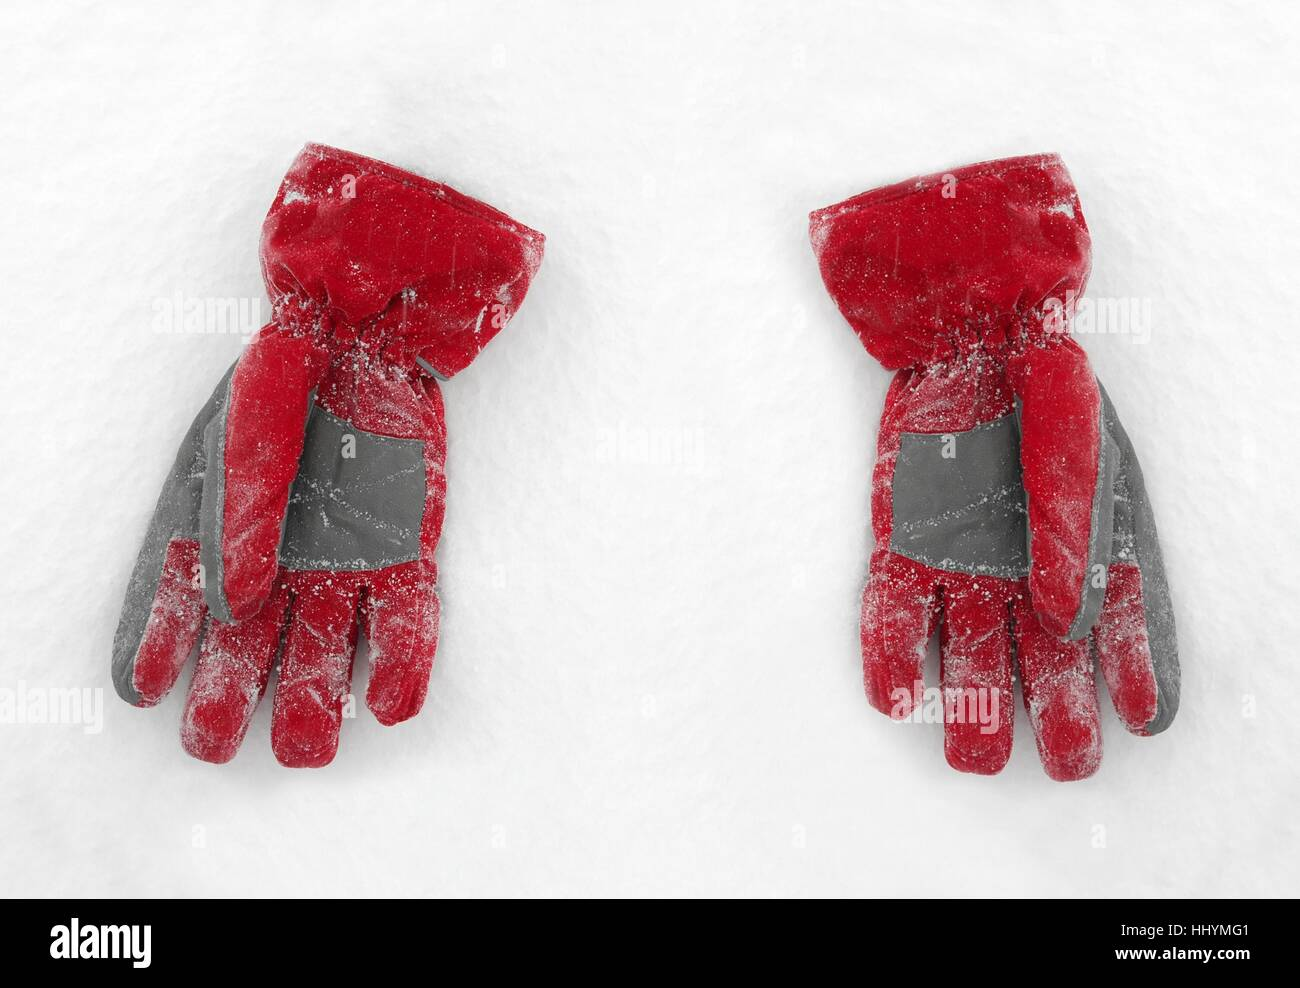 A pair of red glows on the snow - Stock Image